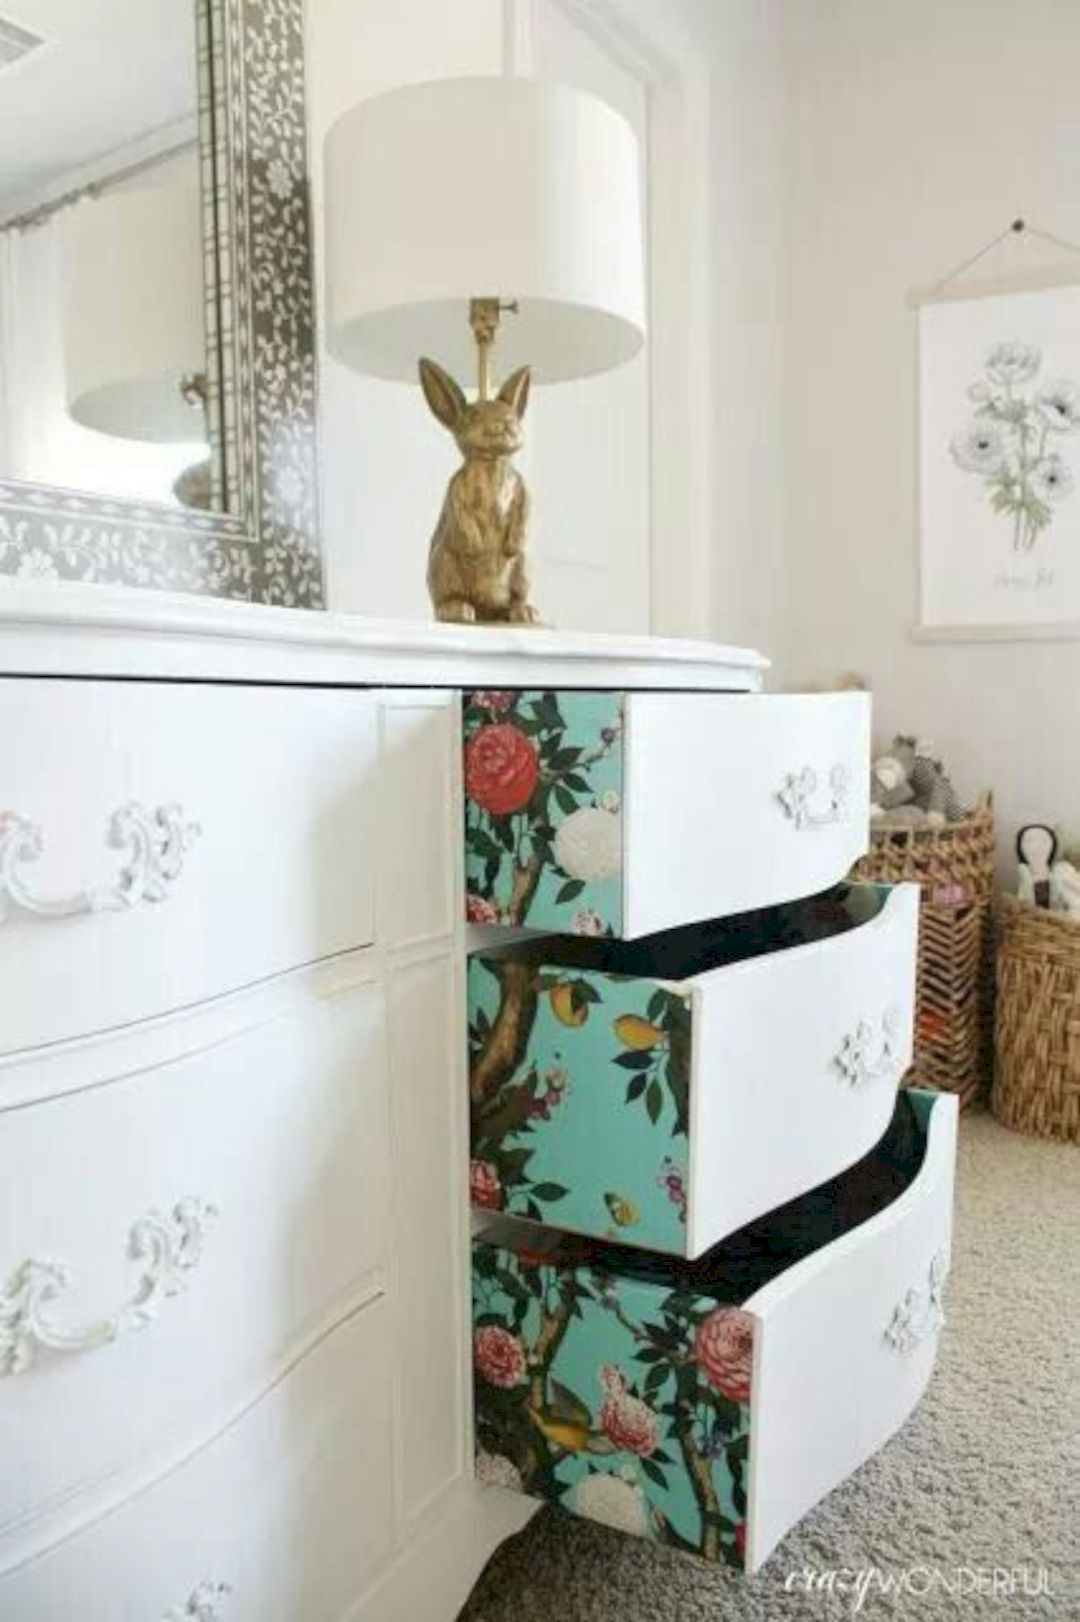 15 Amazing Refurbished Furniture Ideas You Should Try Out At Home  # Muebles Remodelados